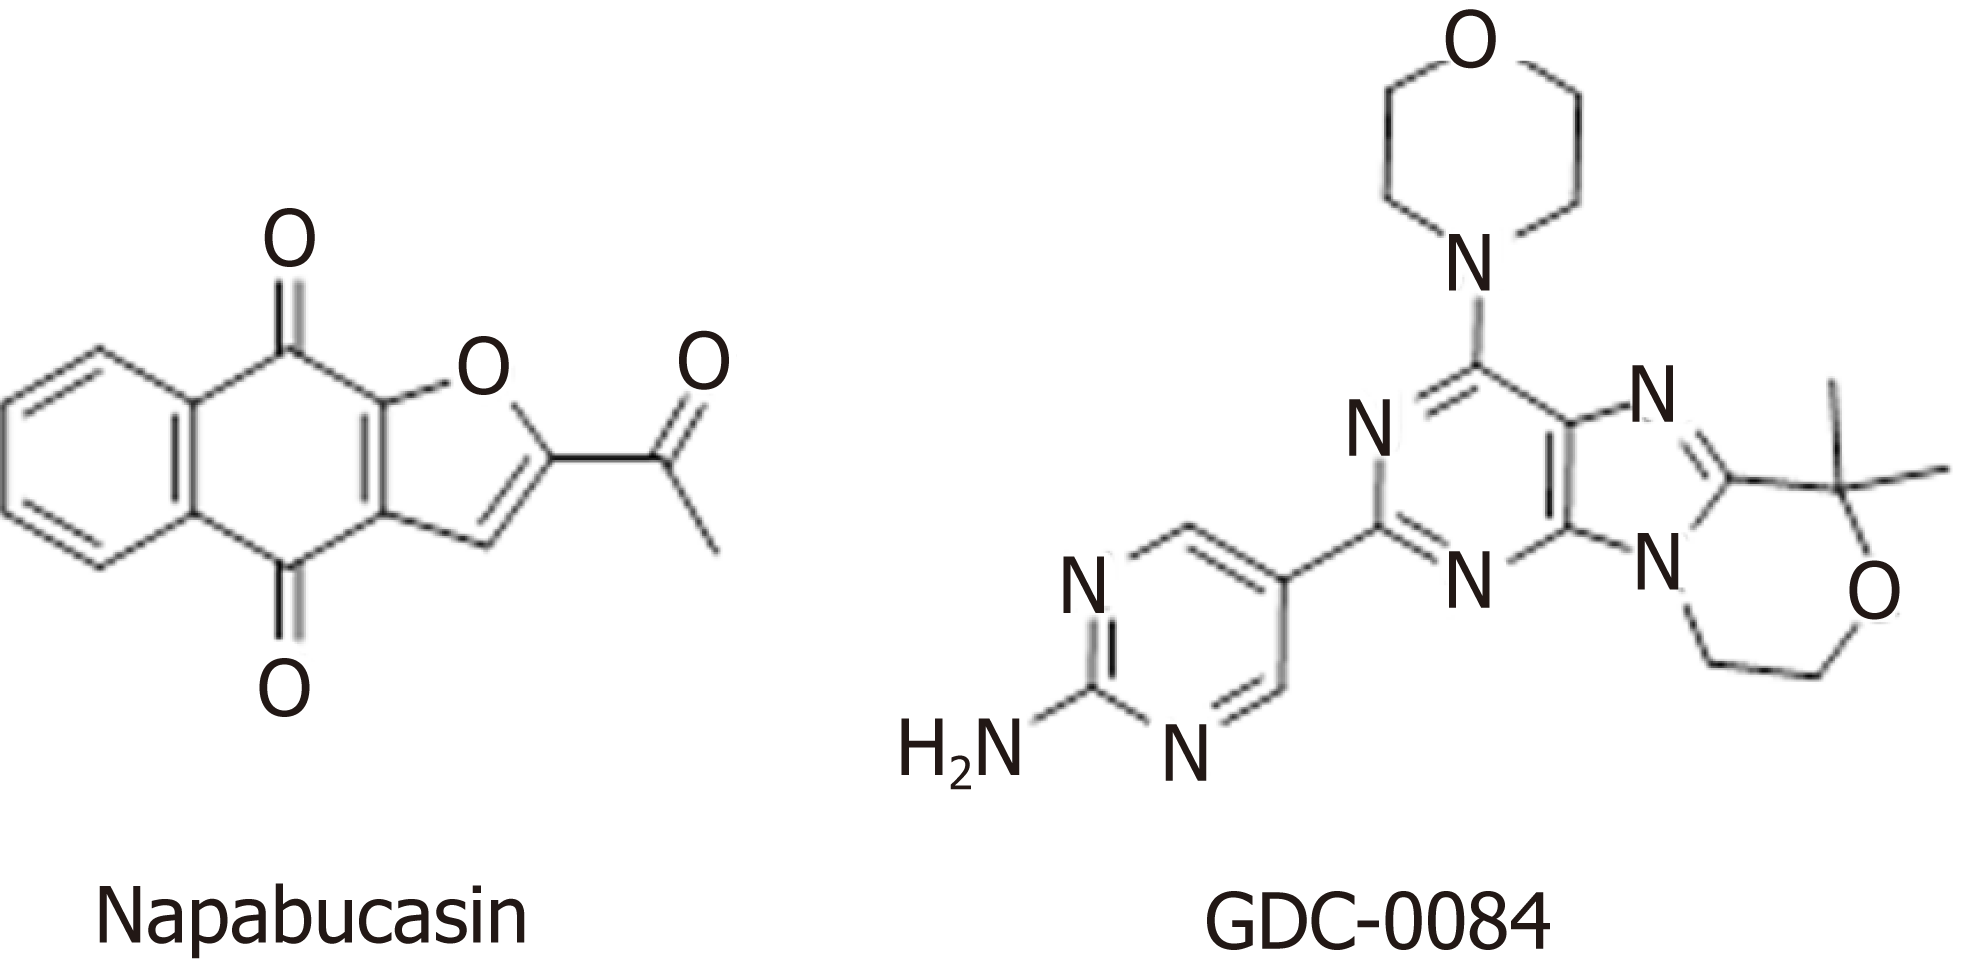 Chemically Induced Degradation of the Oncogenic